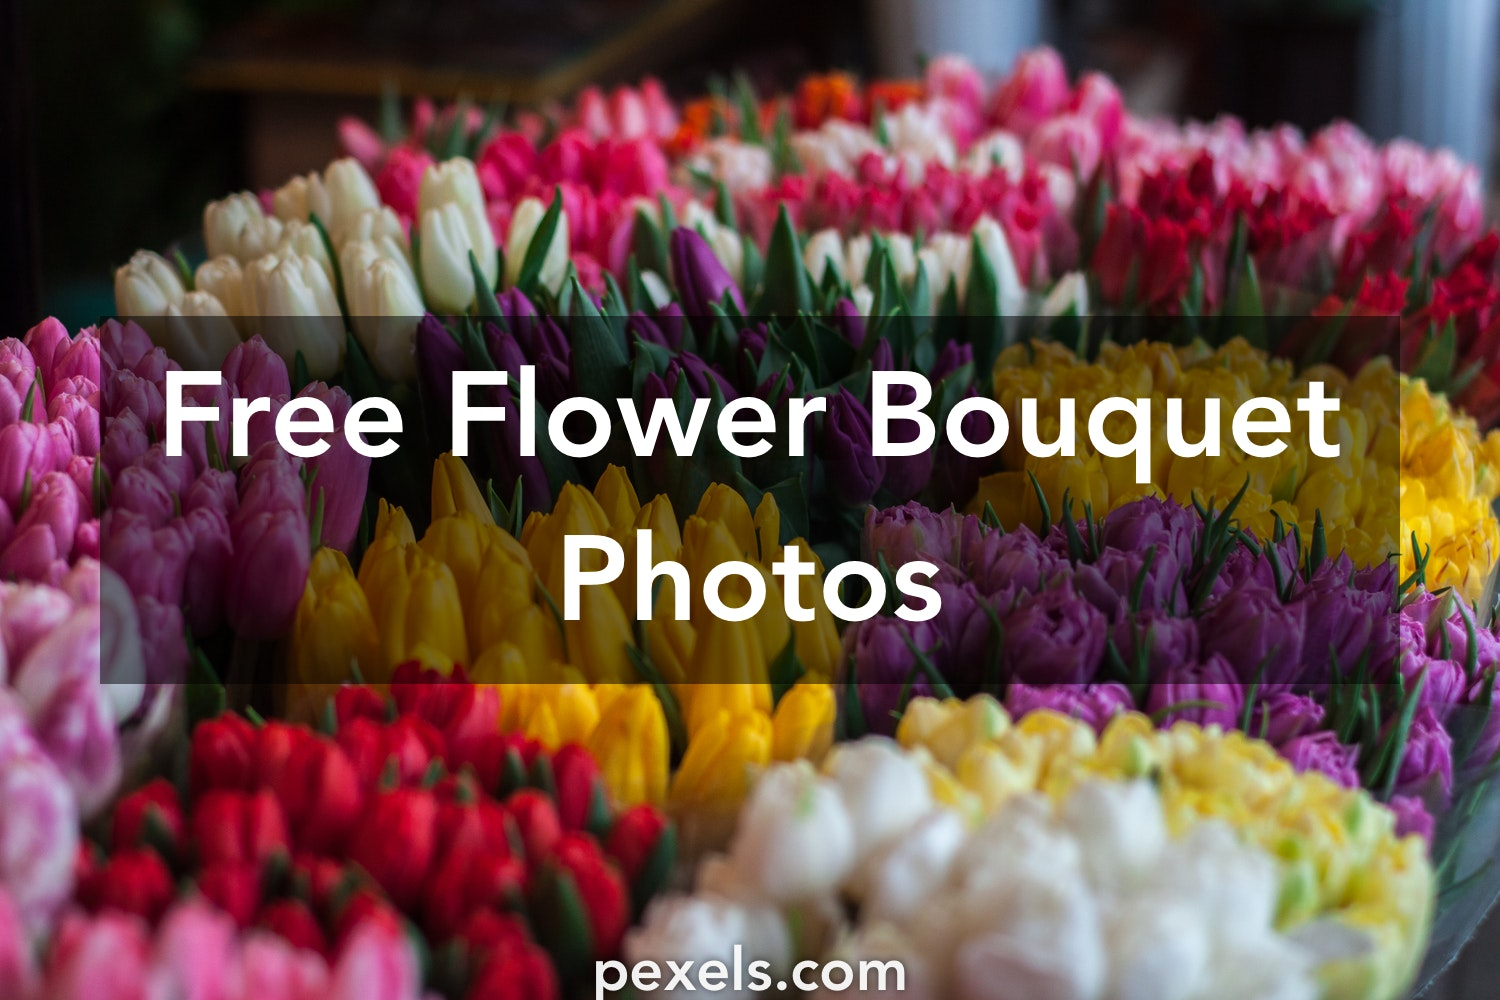 1000+ Engaging Flower Bouquet Photos · Pexels · Free Stock Photos